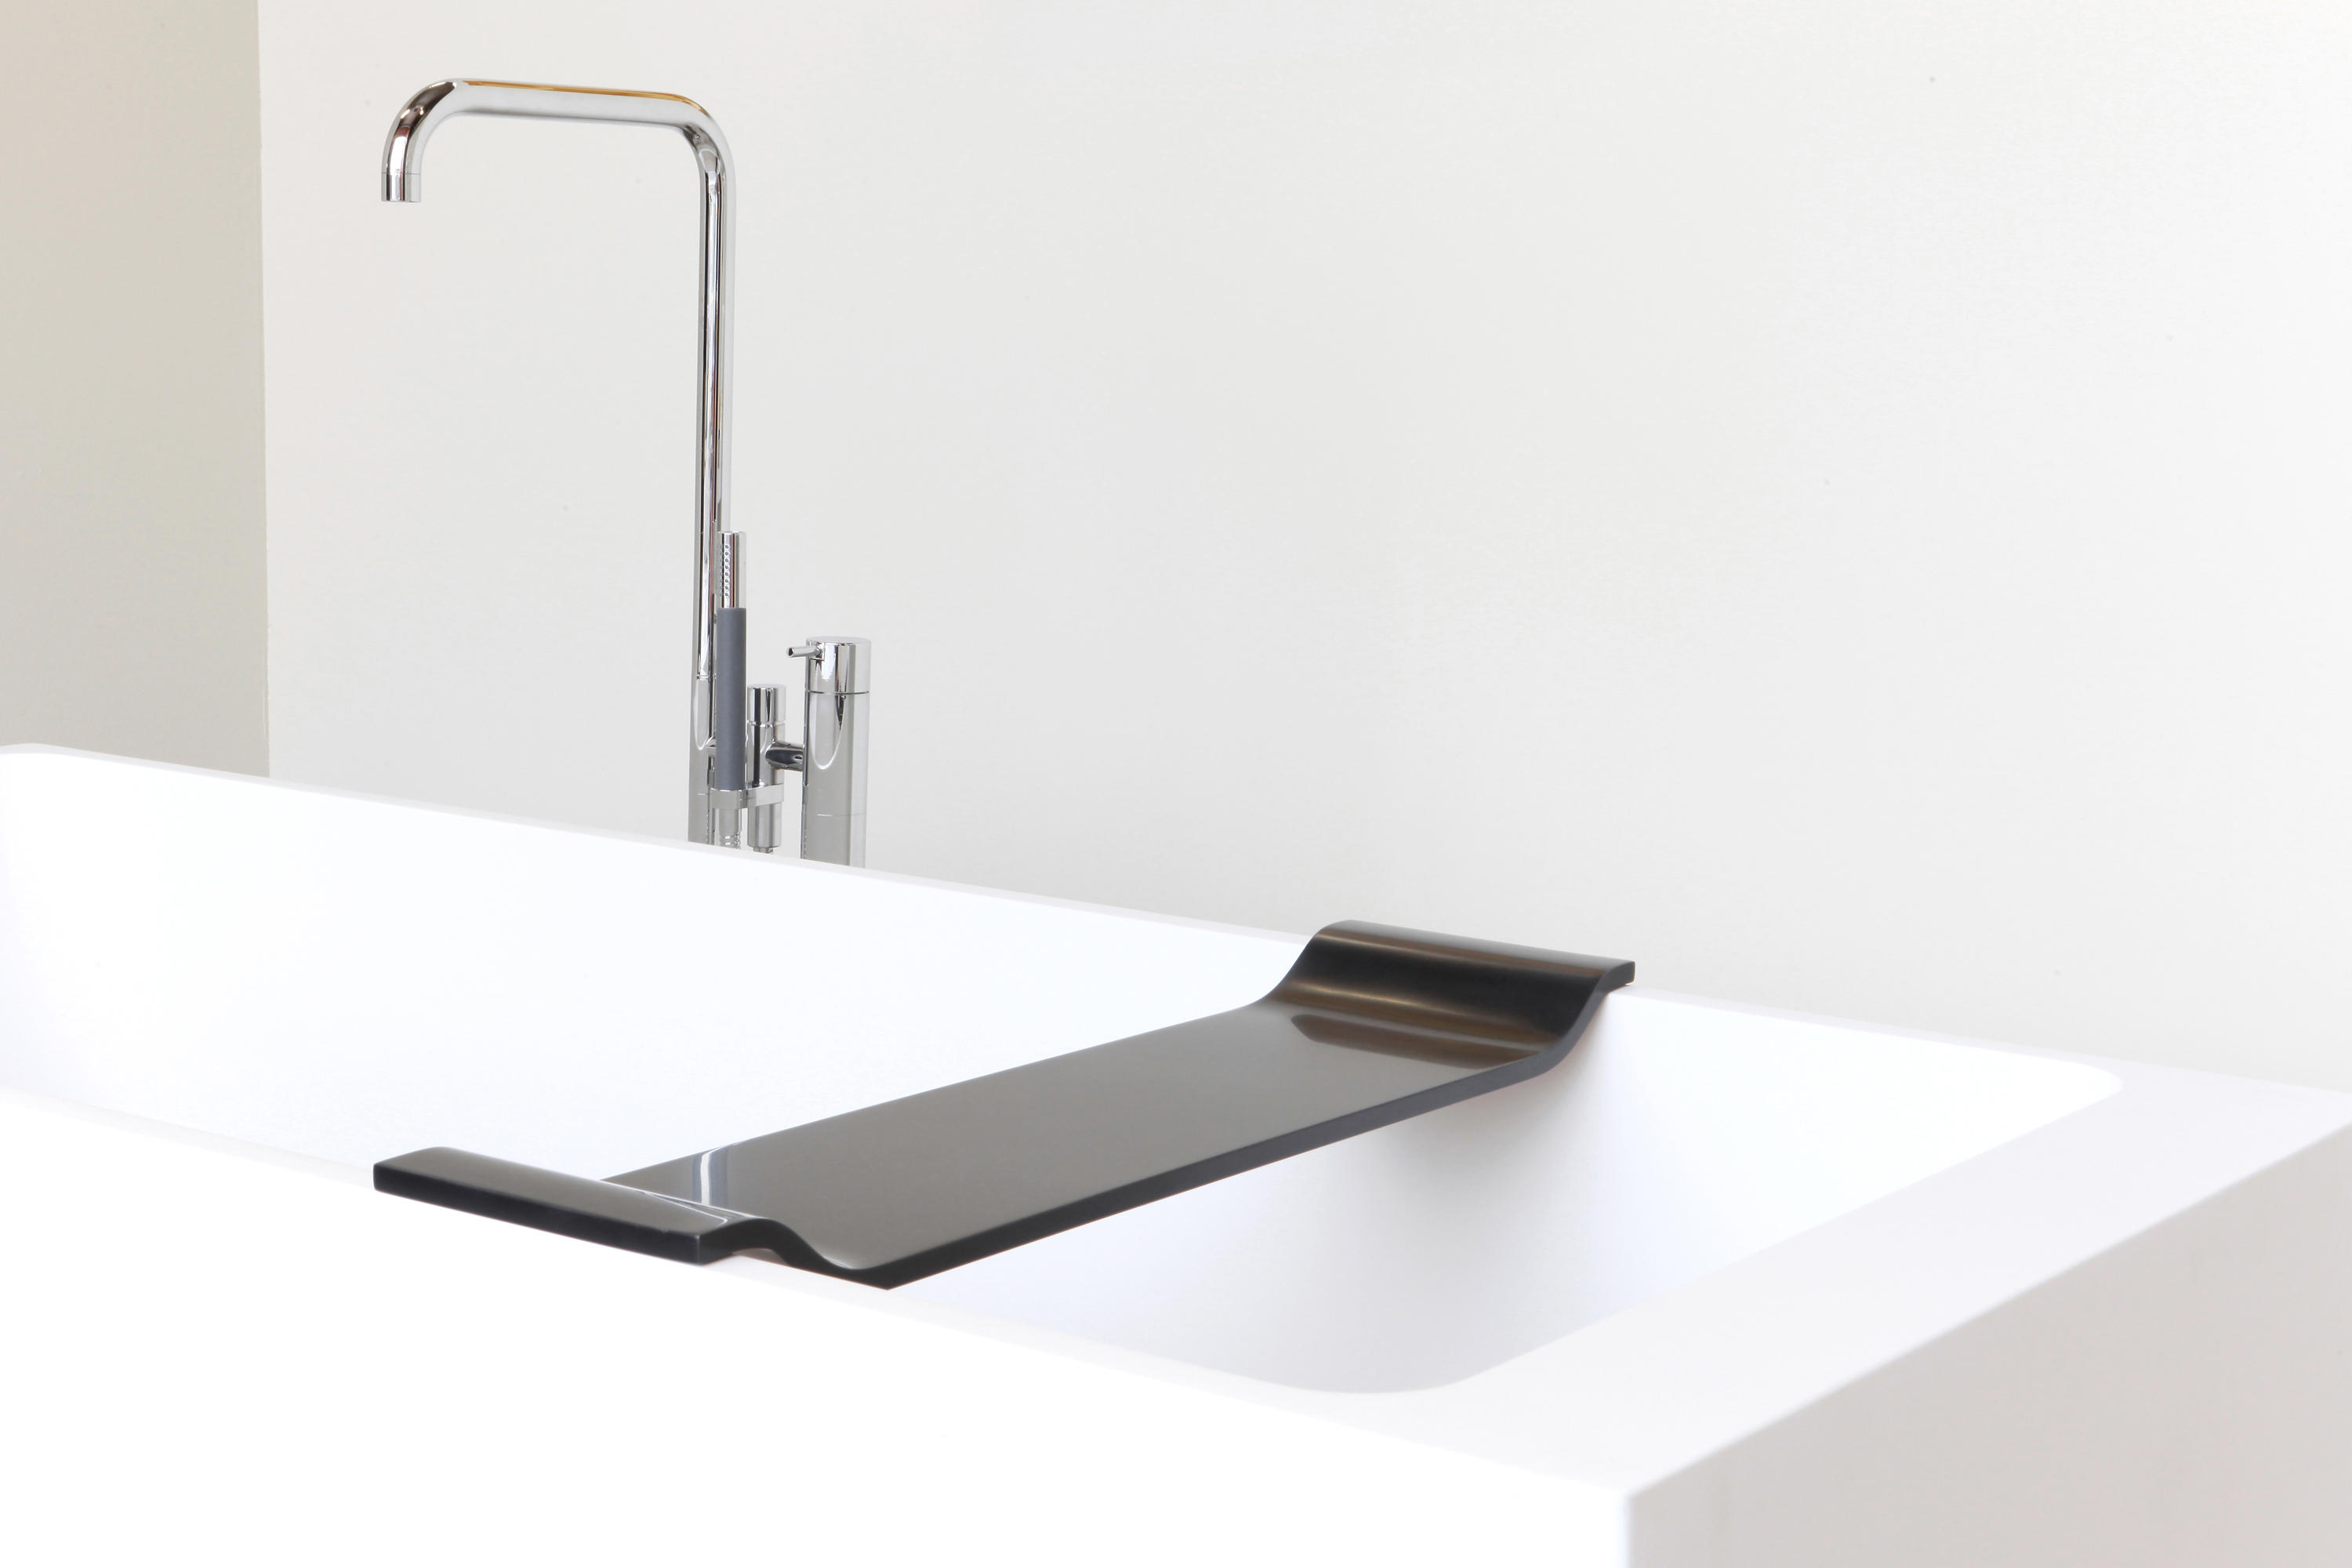 Axis bath tray by Not Only White B V    Shelves. AXIS BATH TRAY   Shelves from Not Only White B V    Architonic